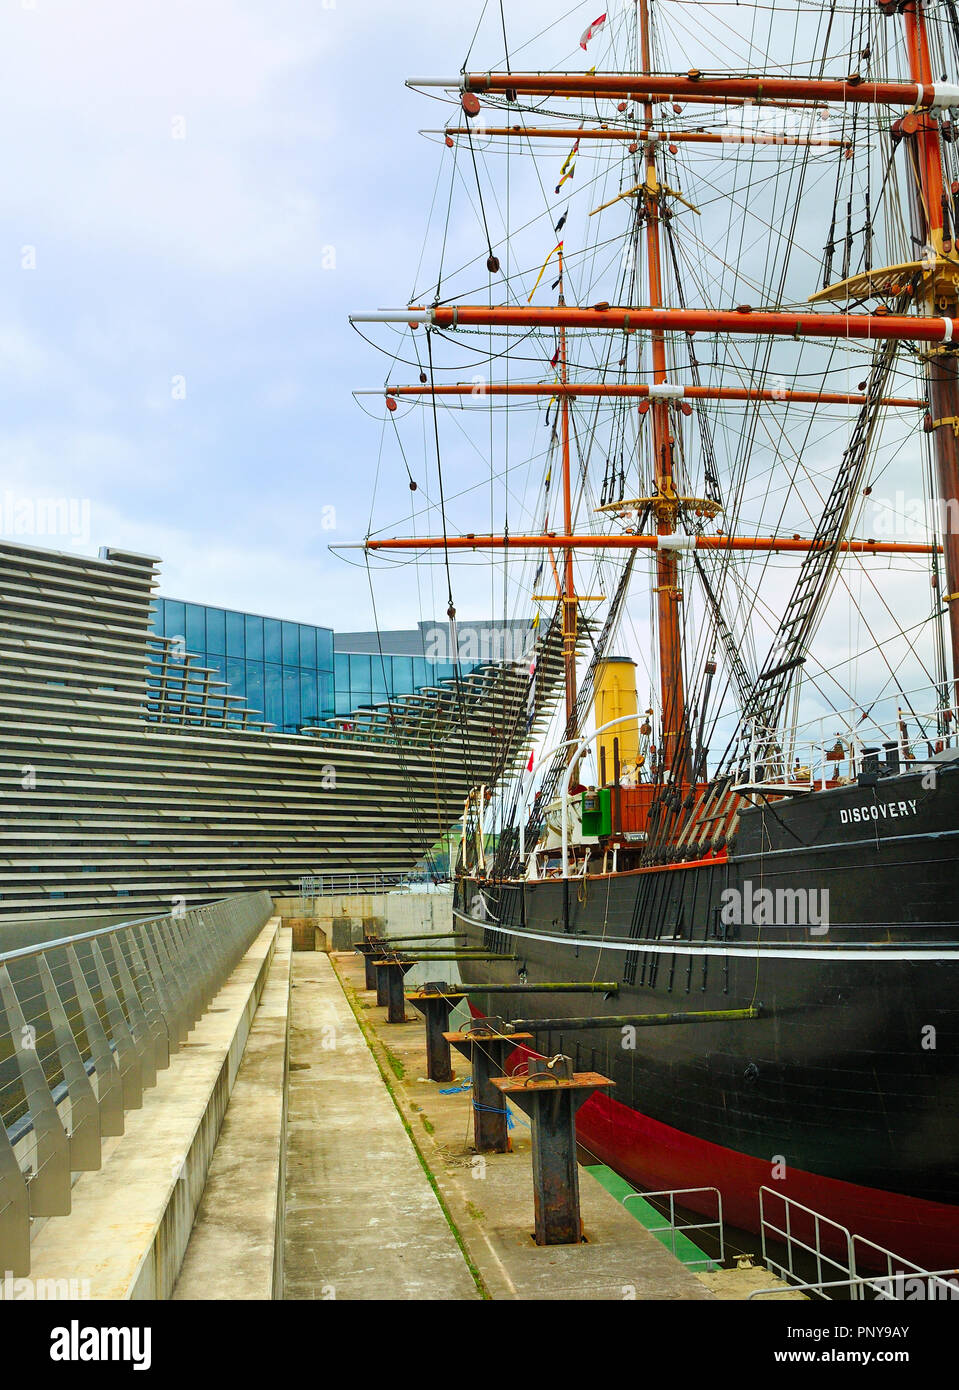 RRS Discovery research ship alongside the V & A Museum, Dundee Waterfront, Scotland Stock Photo